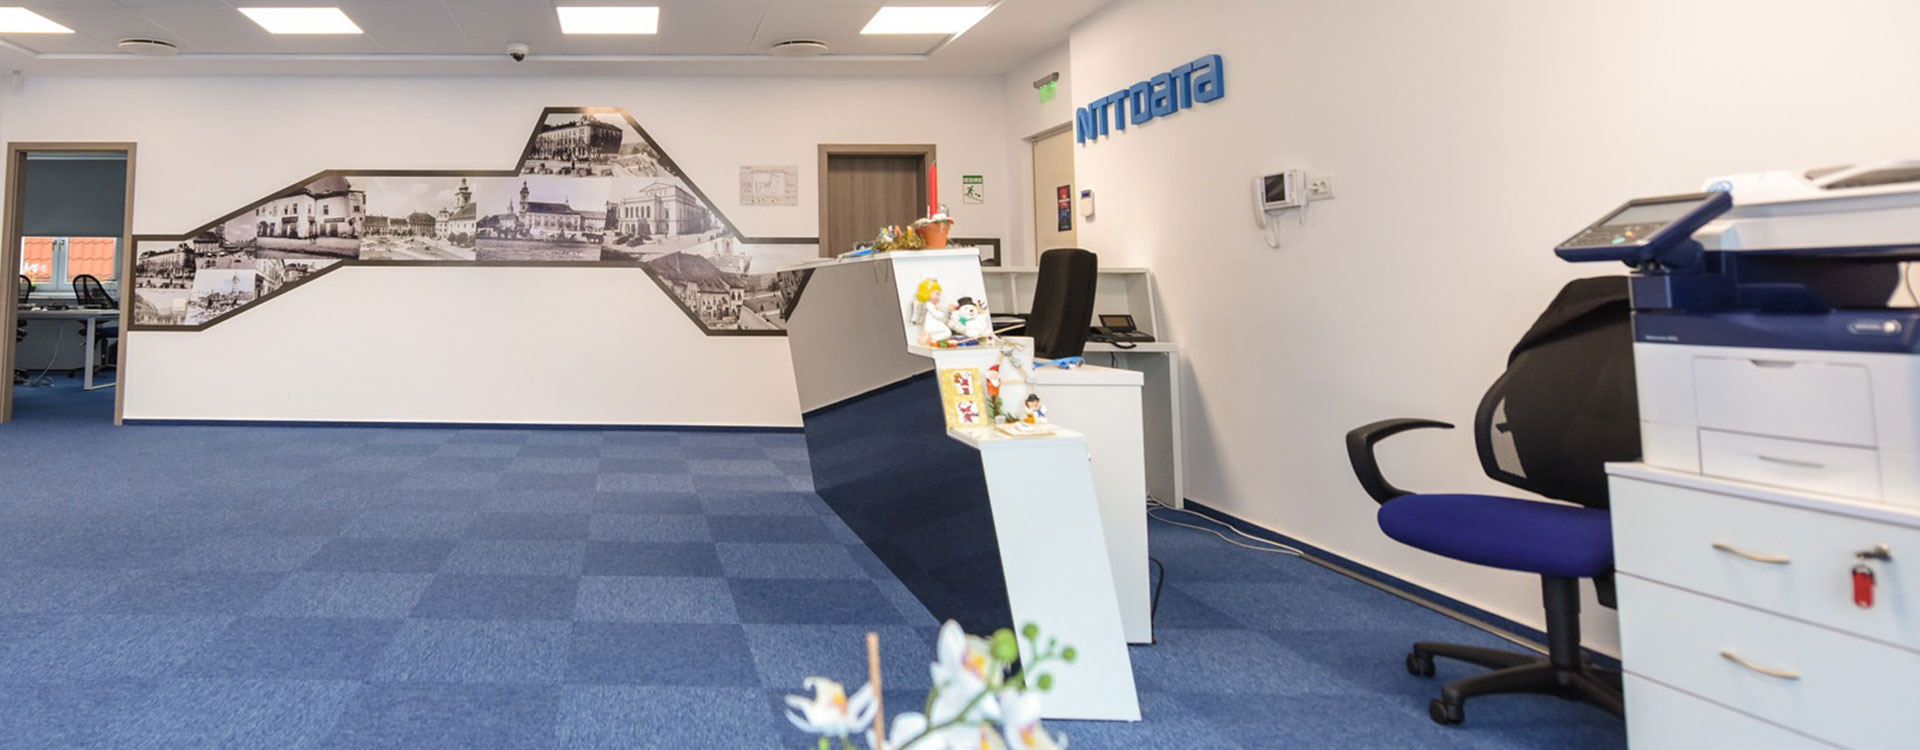 NTT DATA Sibiu Office